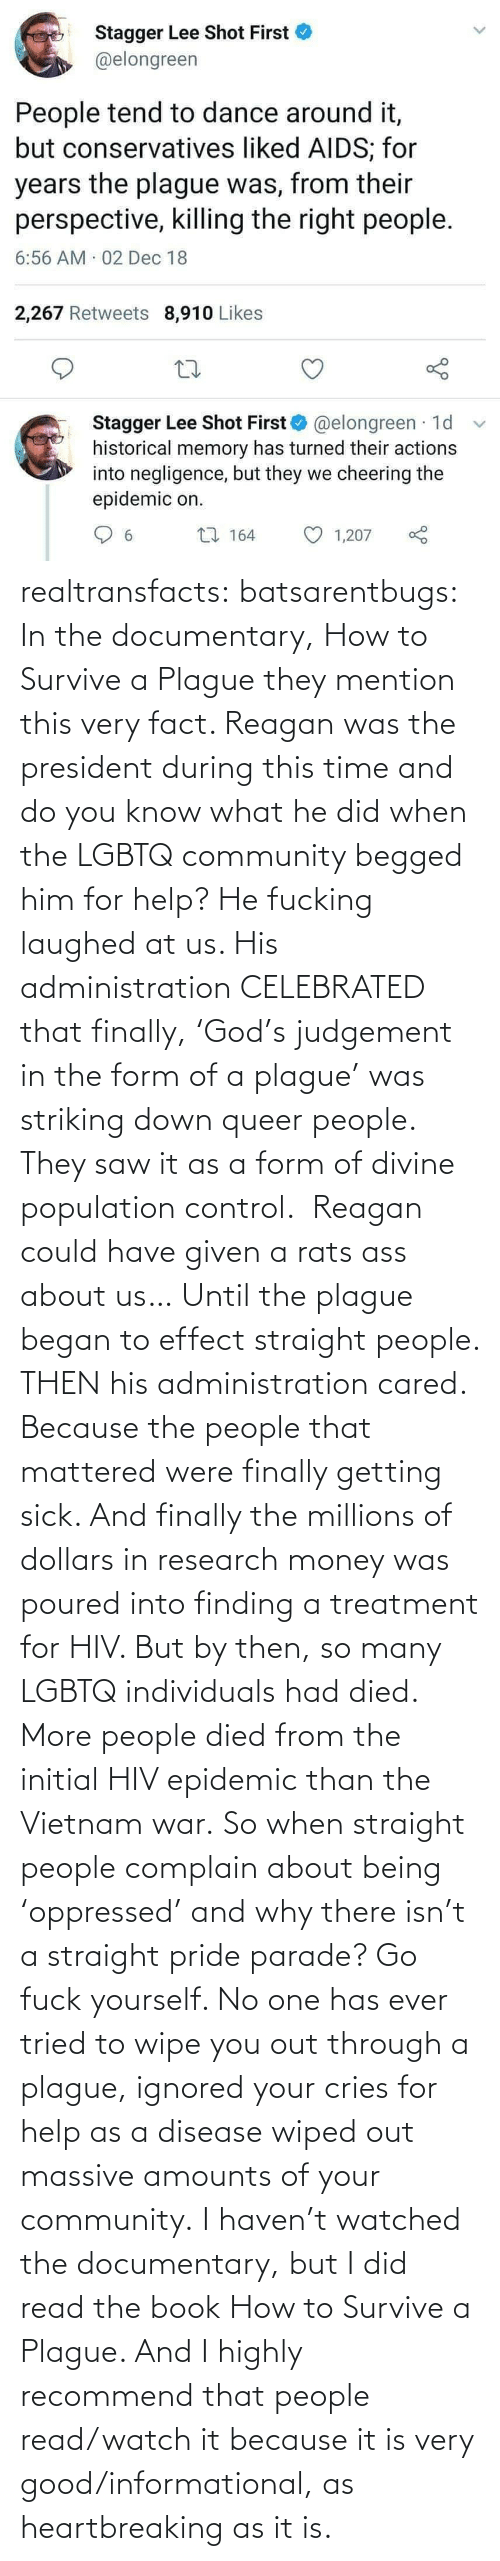 Getting: Stagger Lee Shot First  @elongreen  People tend to dance around it,  but conservatives liked AIDS; for  years the plague was, from their  perspective, killing the right people.  6:56 AM 02 Dec 18  2,267 Retweets 8,910 Likes  Stagger Lee Shot First O @elongreen · 1d  historical memory has turned their actions  into negligence, but they we cheering the  epidemic on.  27 164  1,207  6. realtransfacts:  batsarentbugs:  In the documentary, How to Survive a Plague they mention this very fact. Reagan was the president during this time and do you know what he did when the LGBTQ community begged him for help? He fucking laughed at us. His administration CELEBRATED that finally, 'God's judgement in the form of a plague' was striking down queer people.  They saw it as a form of divine population control.  Reagan could have given a rats ass about us… Until the plague began to effect straight people. THEN his administration cared. Because the people that mattered were finally getting sick. And finally the millions of dollars in research money was poured into finding a treatment for HIV. But by then, so many LGBTQ individuals had died.  More people died from the initial HIV epidemic than the Vietnam war. So when straight people complain about being 'oppressed' and why there isn't a straight pride parade? Go fuck yourself. No one has ever tried to wipe you out through a plague, ignored your cries for help as a disease wiped out massive amounts of your community.  I haven't watched the documentary, but I did read the book  How to Survive a Plague. And I highly recommend that people read/watch it because it is very good/informational, as heartbreaking as it is.